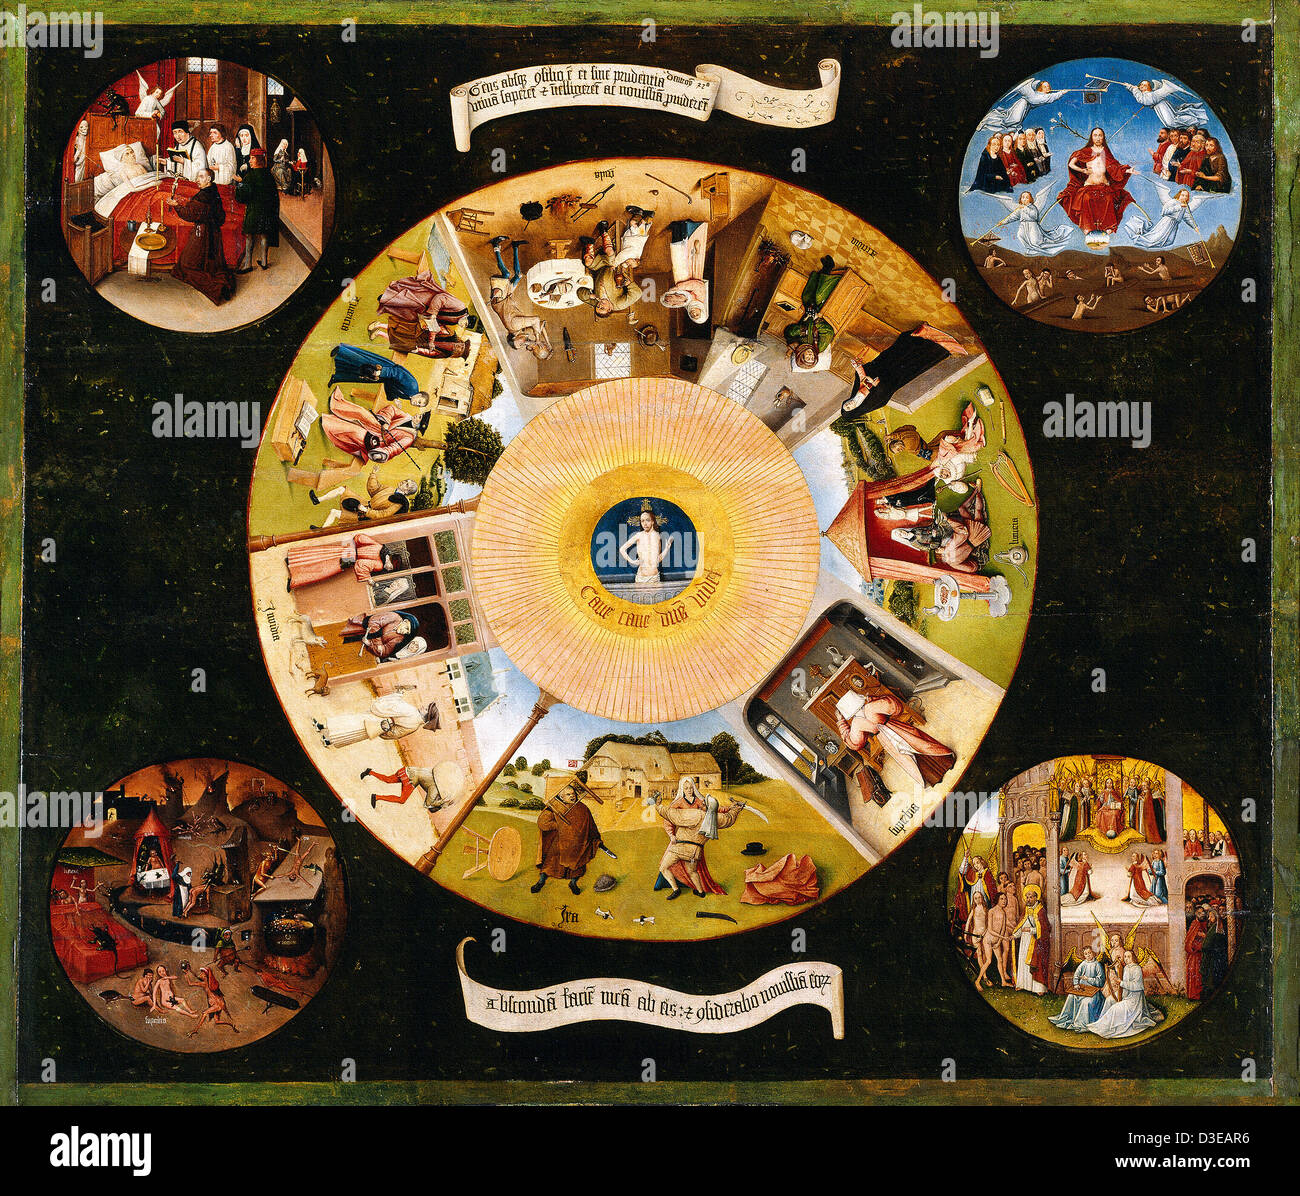 Hieronymus Bosch, The Seven Deadly Sins and the Four Last Things 1500-1525 Oil on wood. Museo del Prado, Madrid, - Stock Image